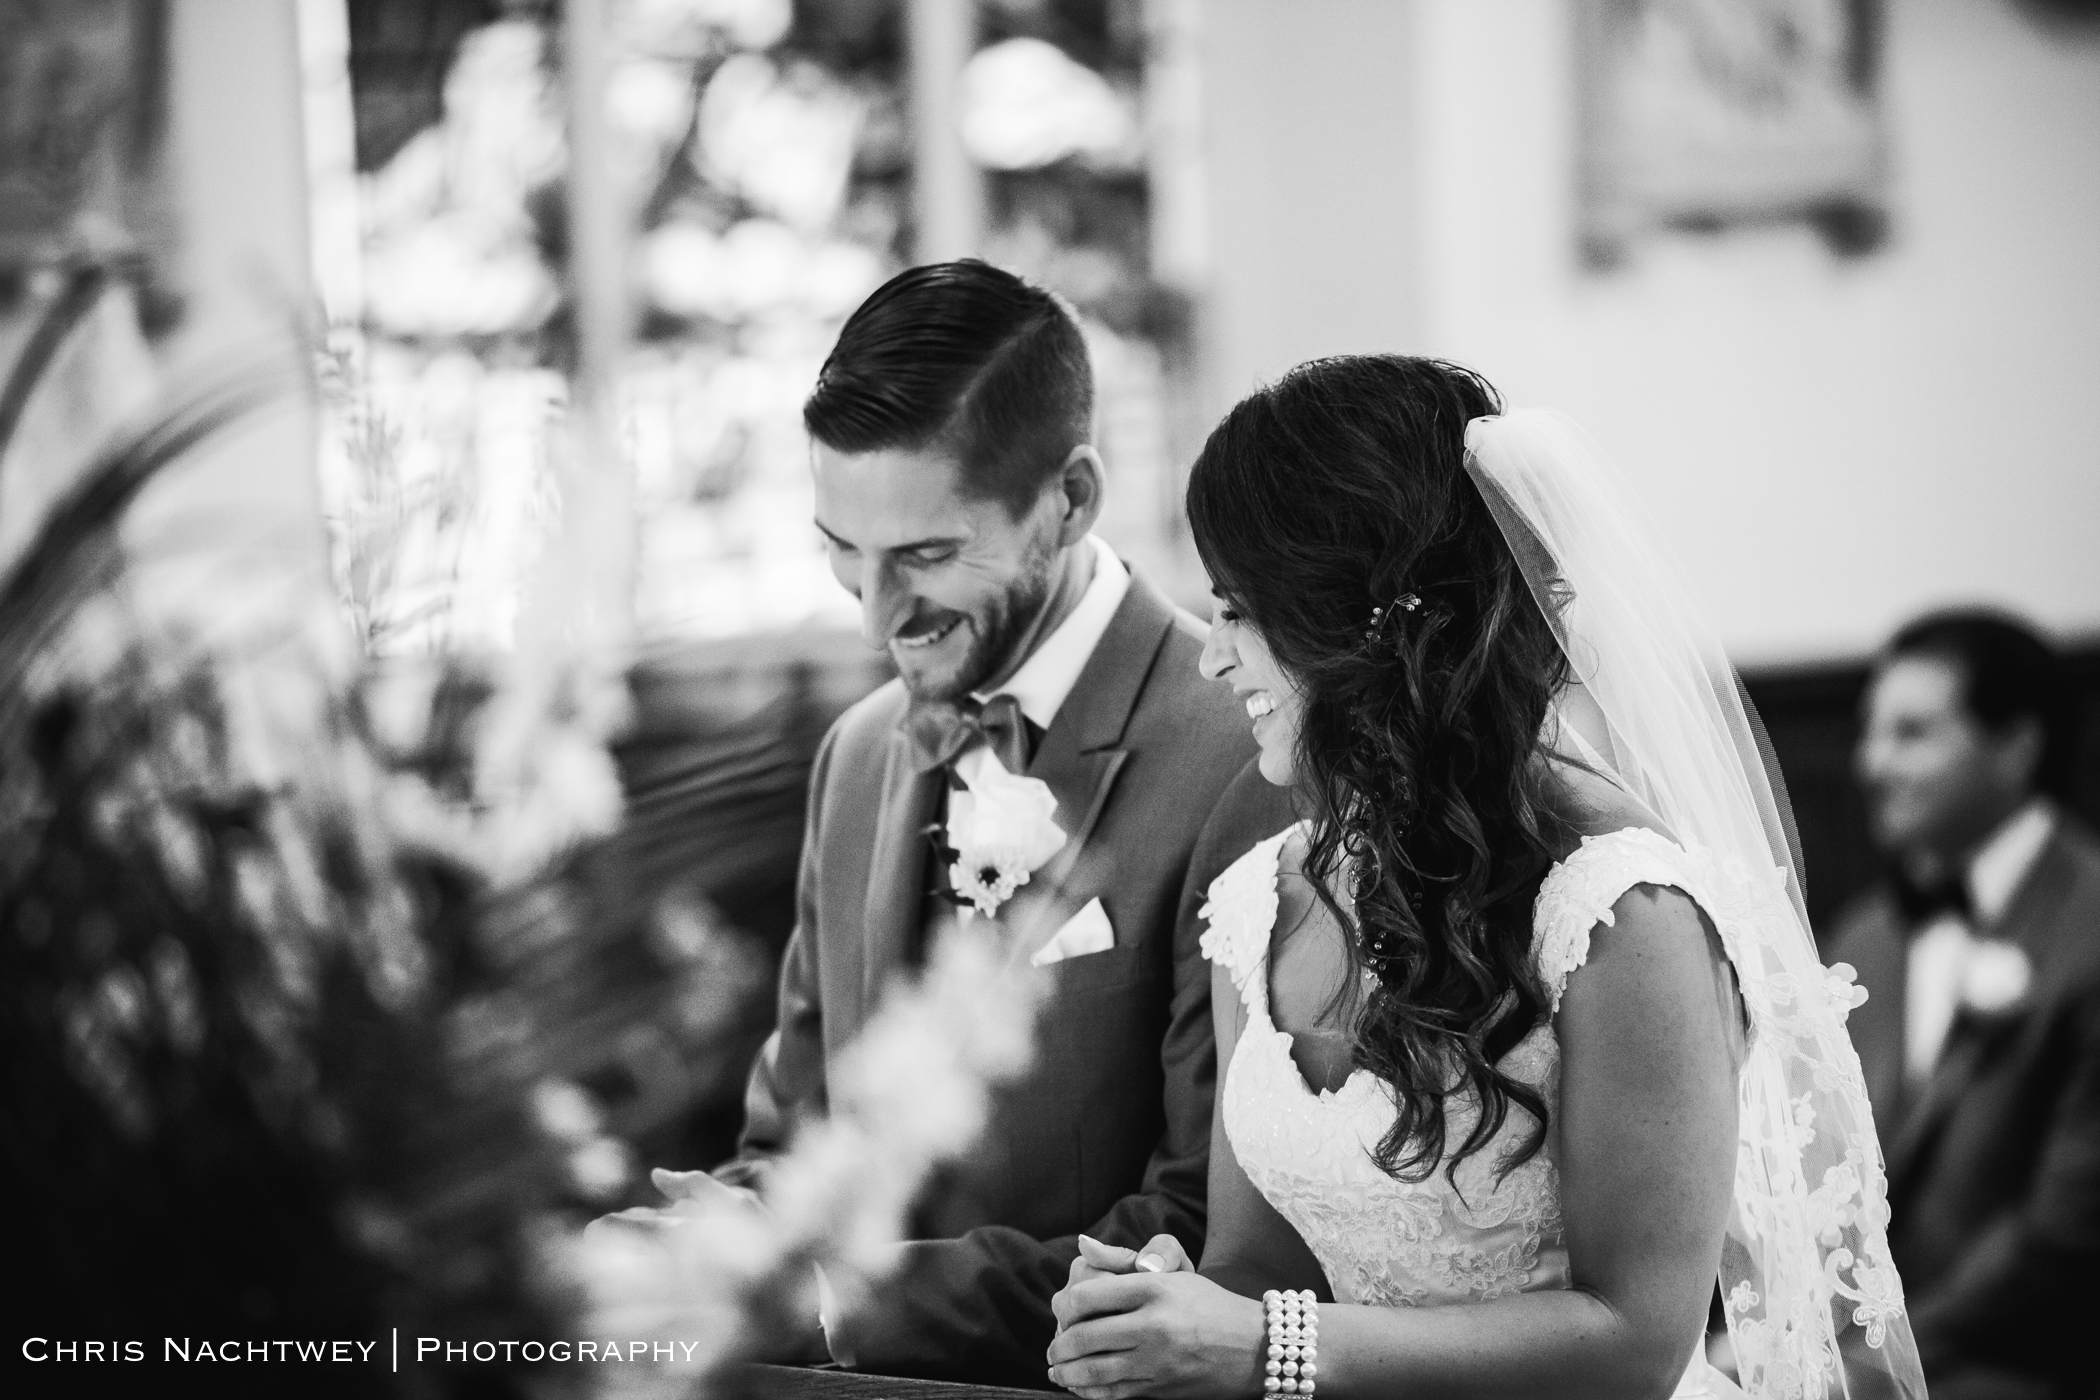 pond-house-cafe-wedding-hartford-ct-photos-chris-nachtwey-photography-2017-jackie-matt-15.jpg